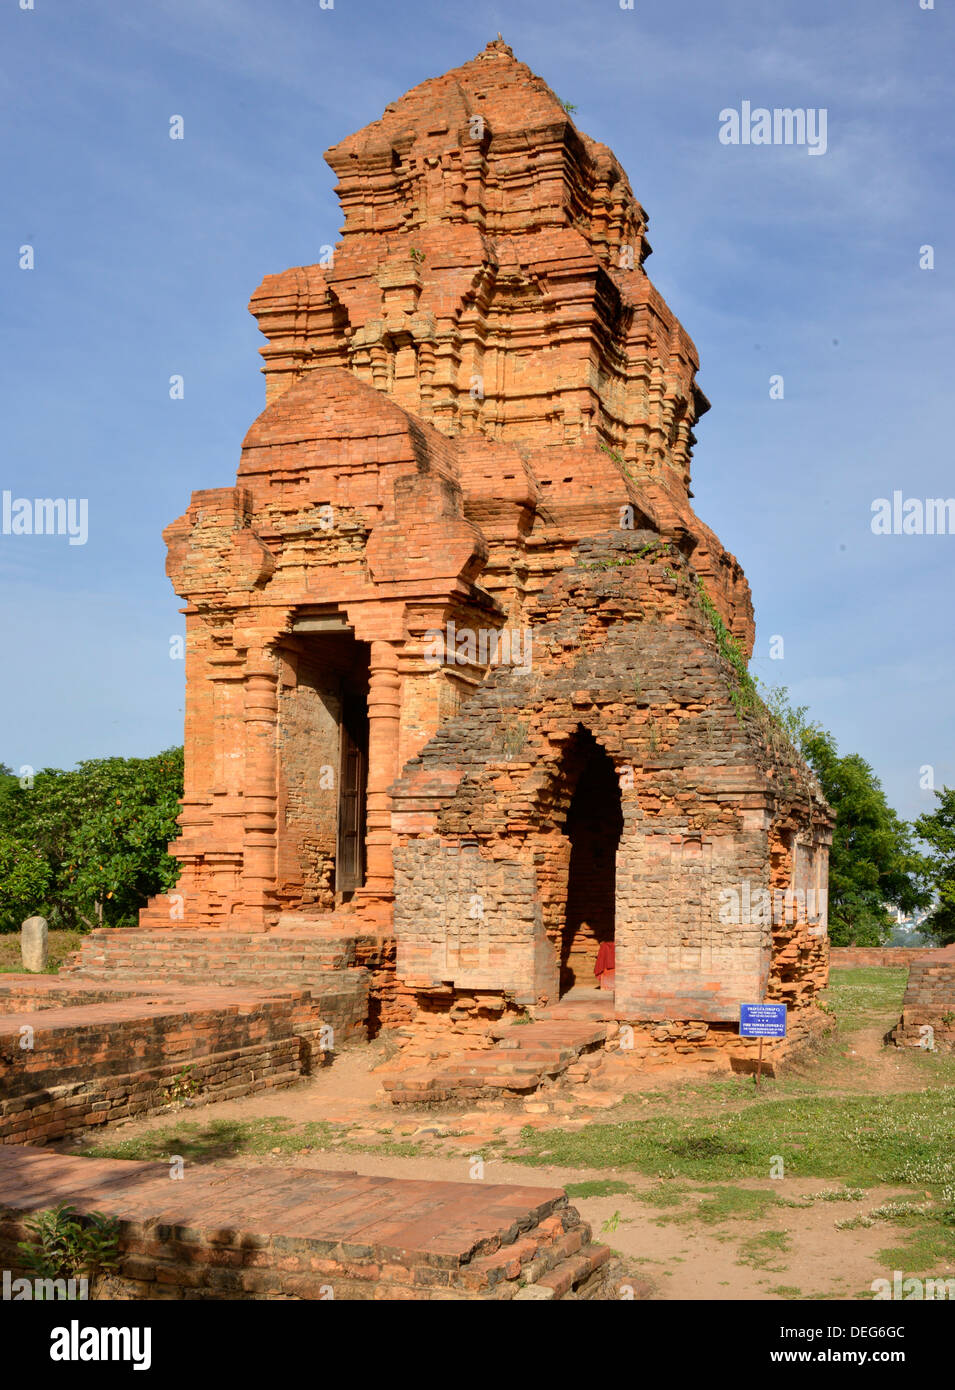 Po Shanu Cham temple, Phan Thiet, Vietnam, Indochina, Southeast Asia, Asia - Stock Image